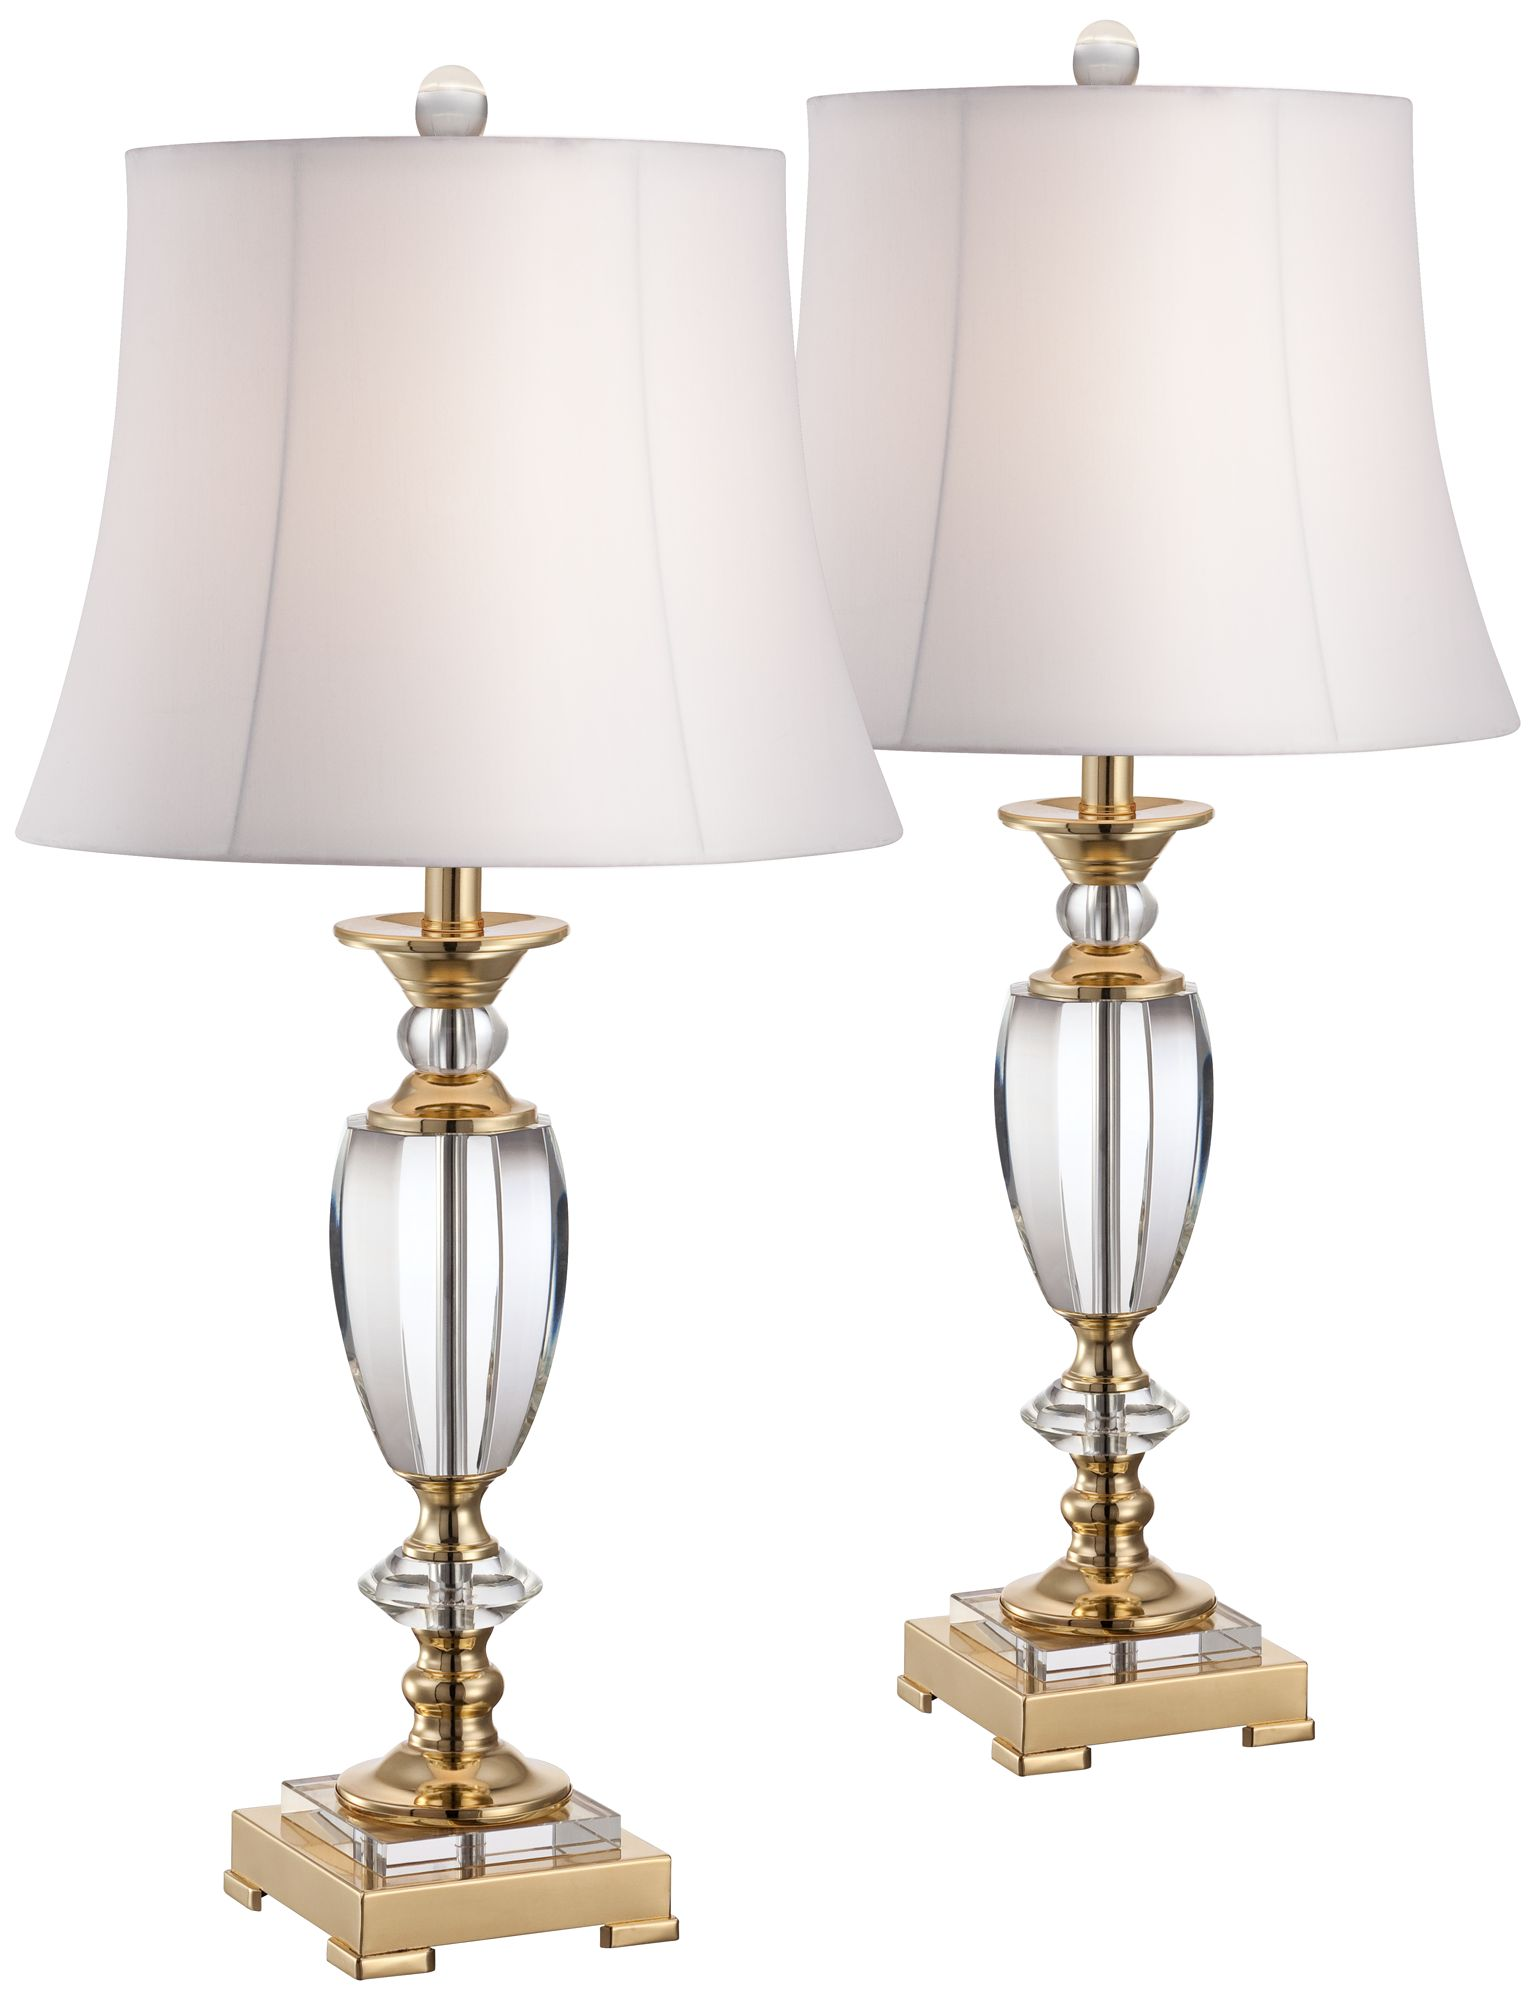 Superior Set Of 2 Crystal And Brass Table Lamps